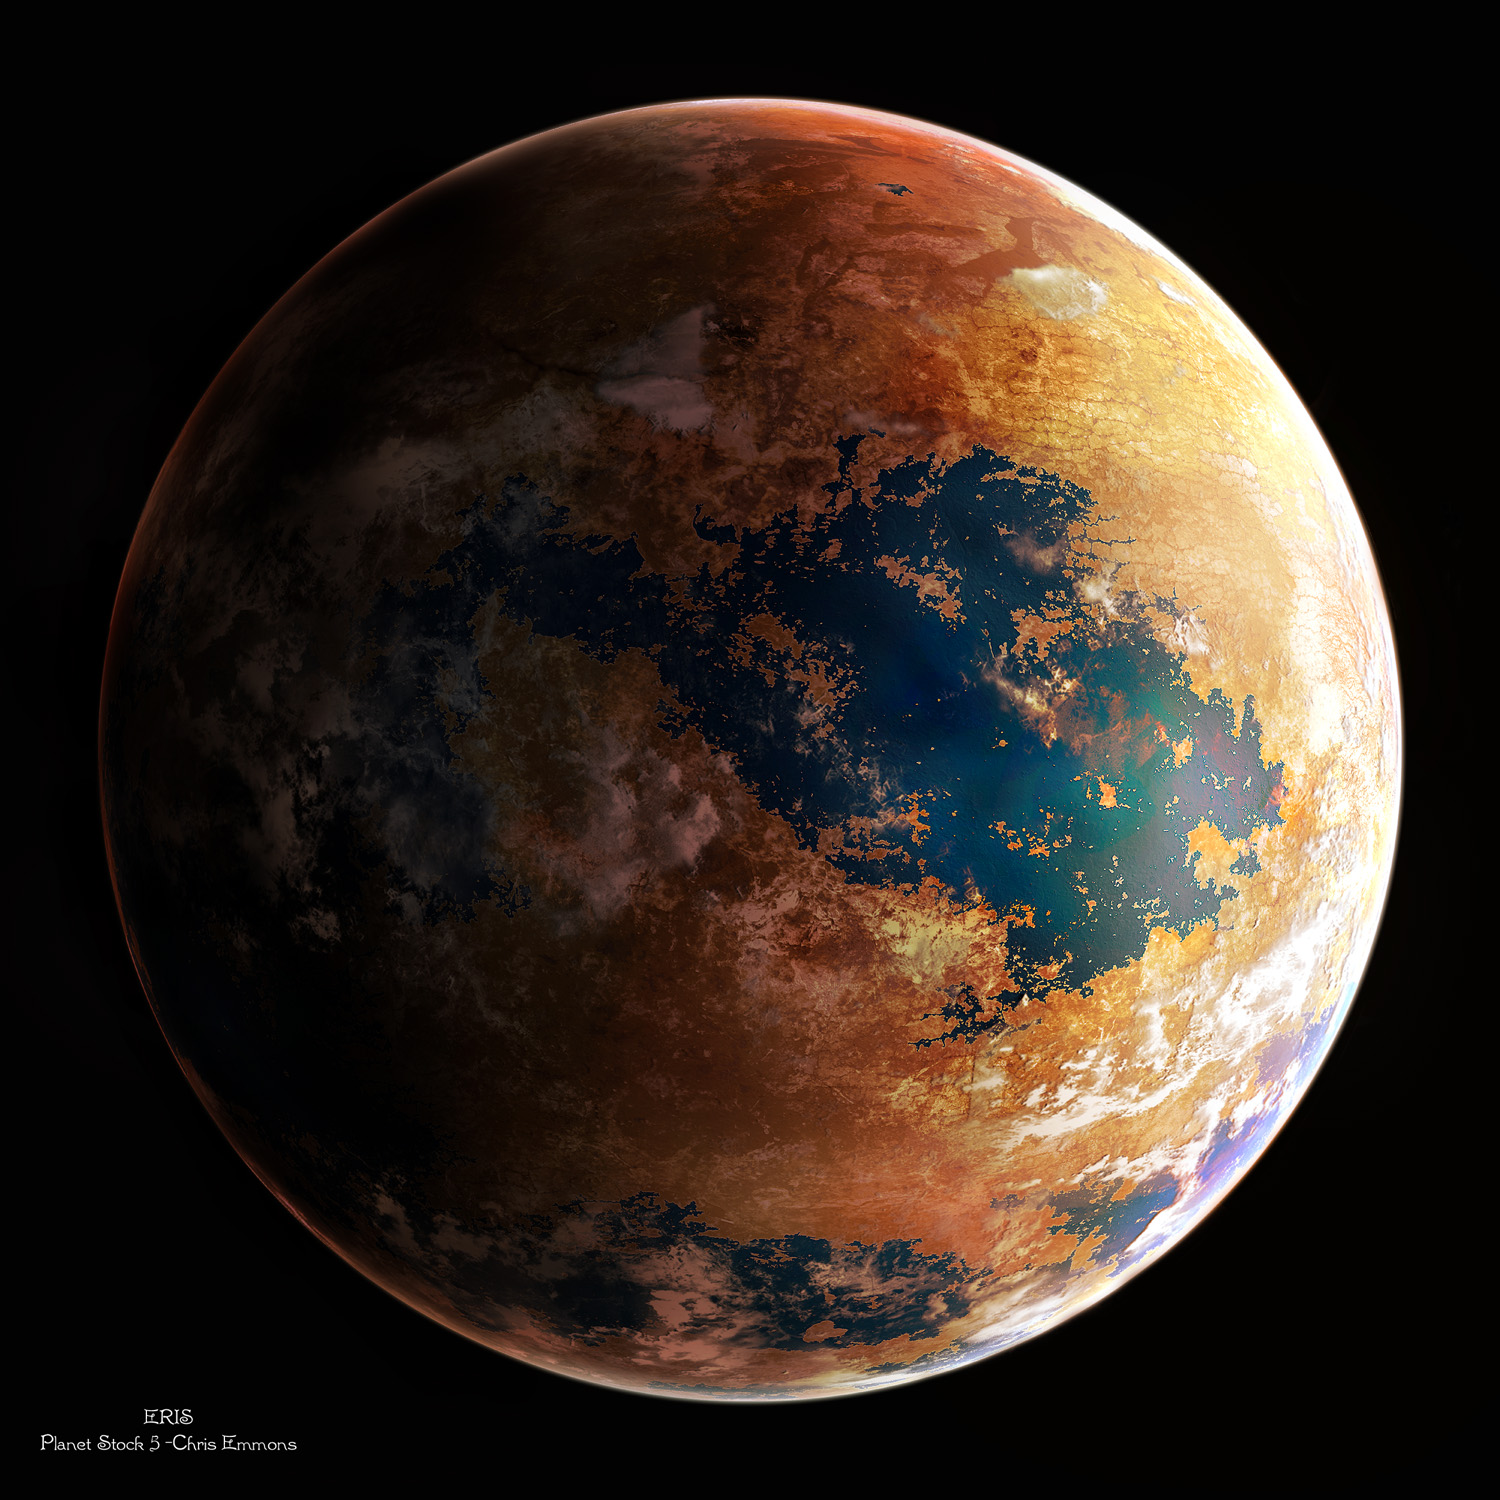 Planet_Stock_5_by_Bareck.jpg